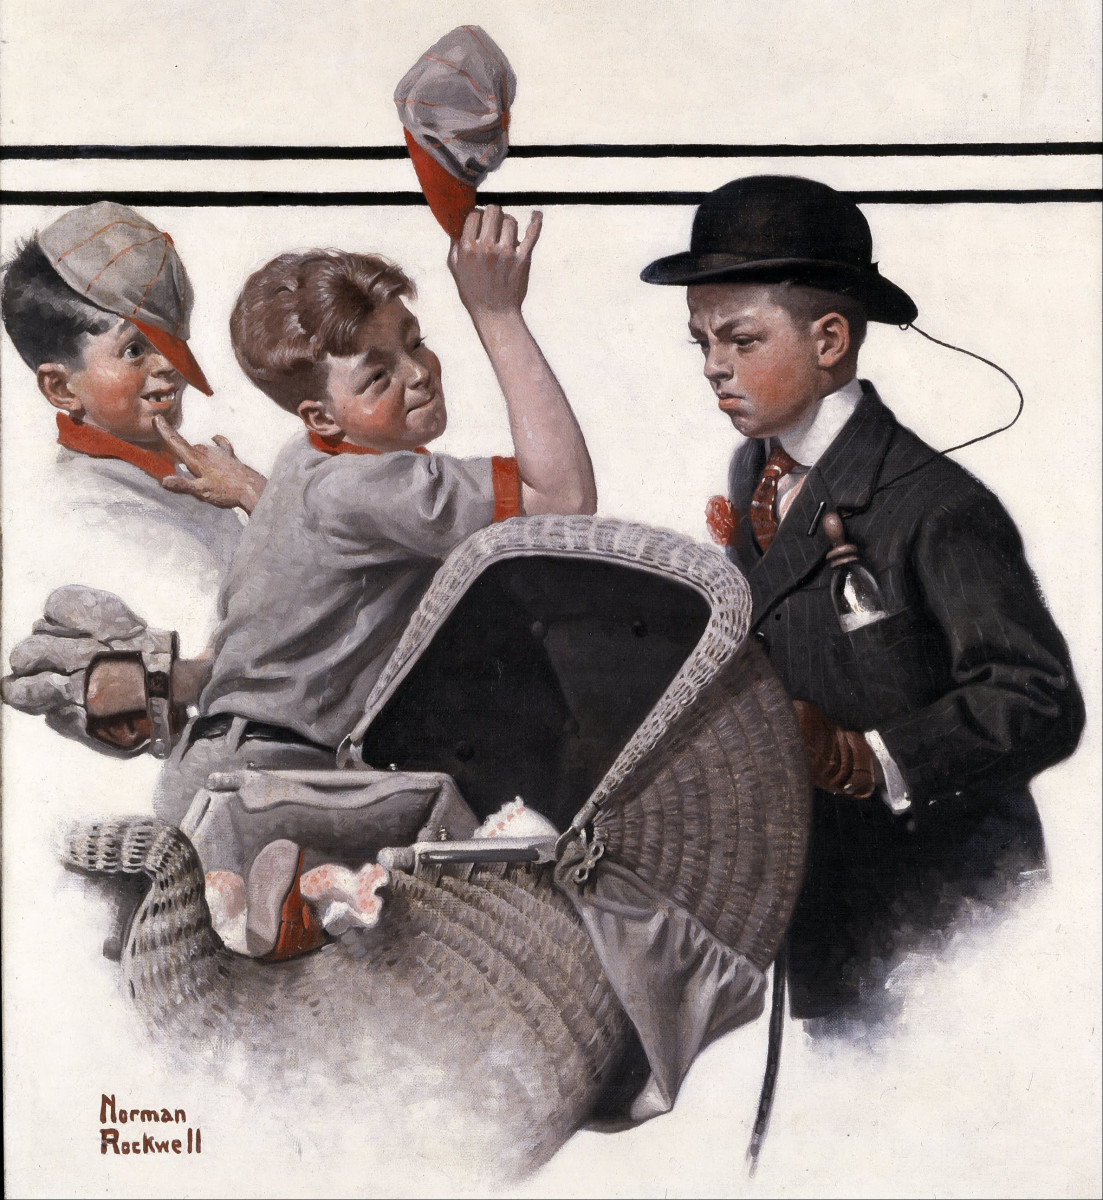 'Boy with Baby Carriage' by Norman Rockwell (circa 1916)